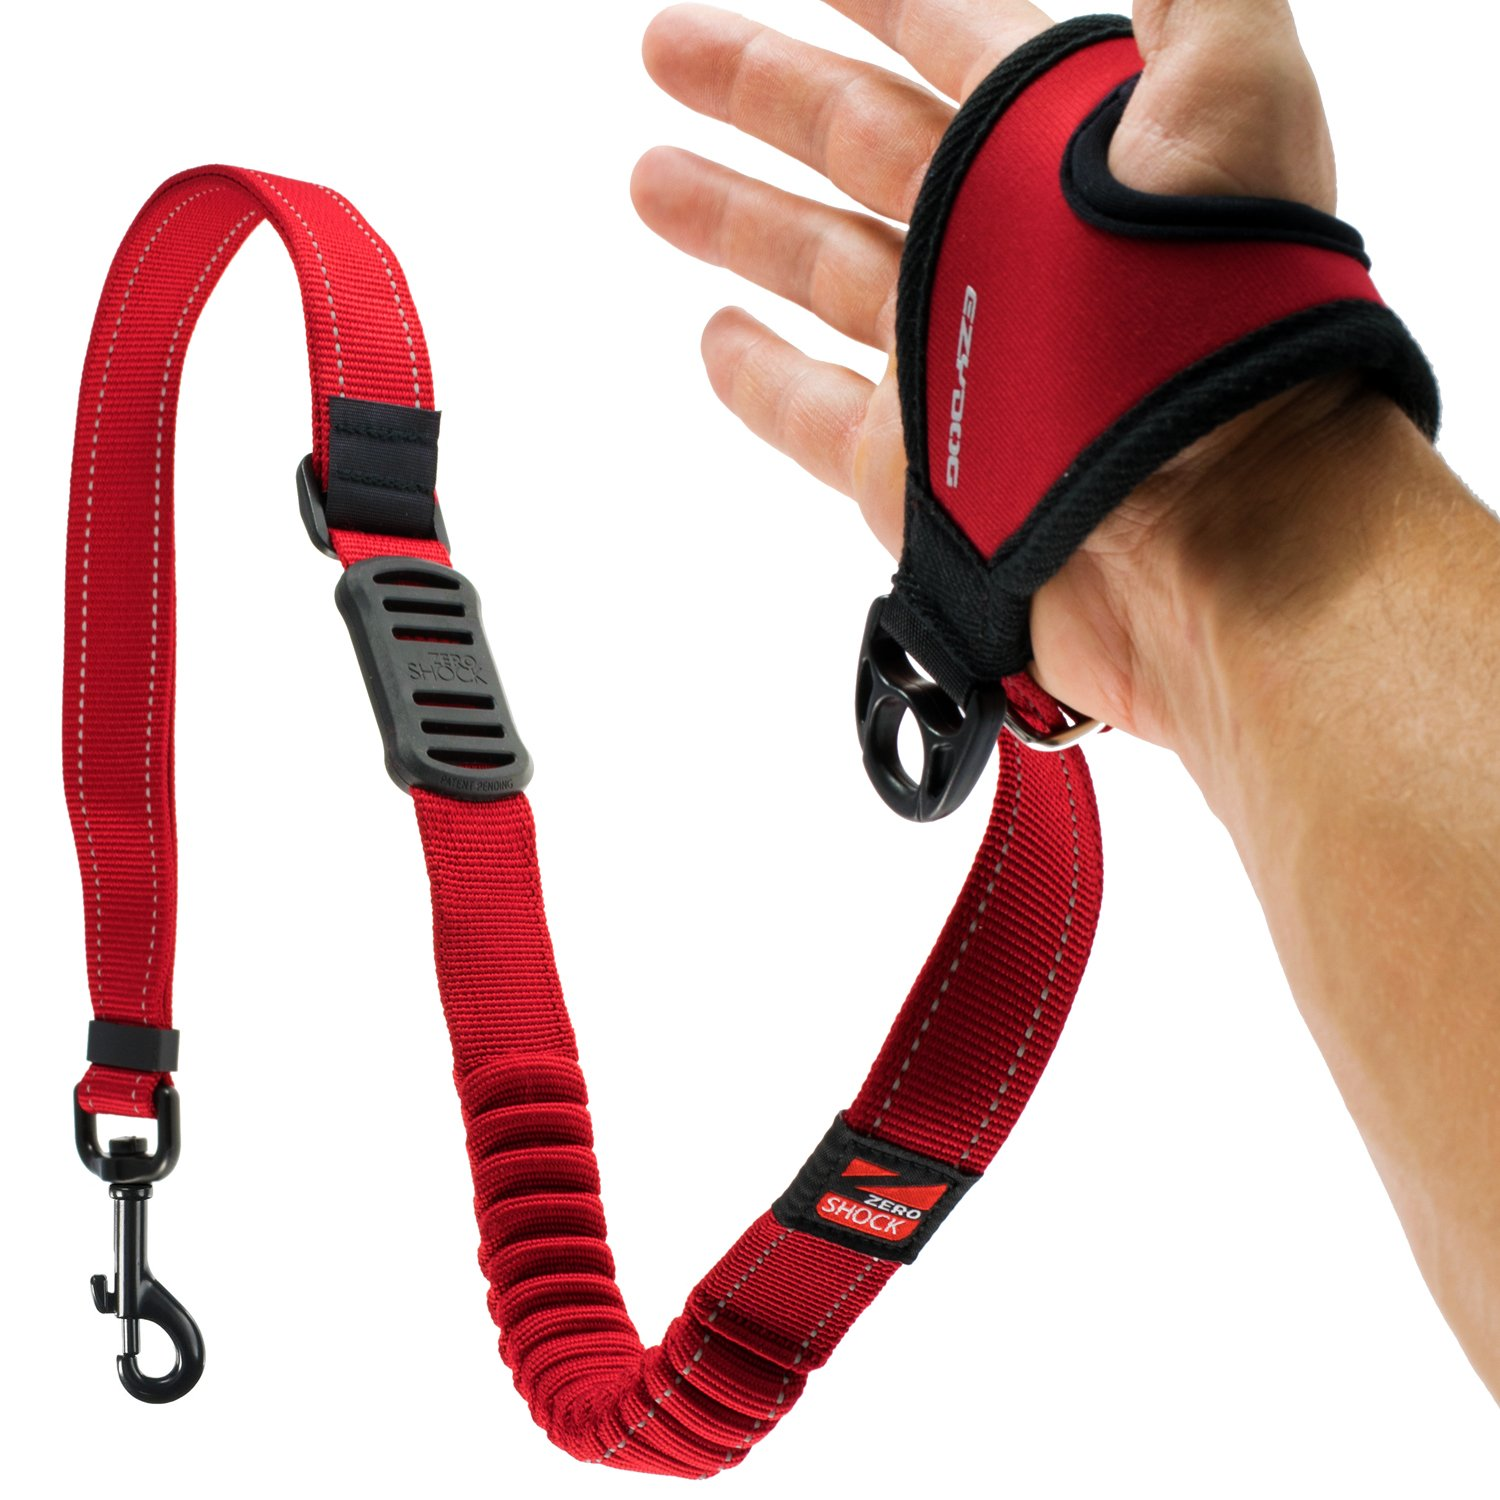 EzyDog HANDY 48 Bungee Dog Leash - The Best Hands-Free Running Leash Training Lead with Superior Control and Reflective Stitching - ZERO SHOCK Shock-Absorbing Technology (Adjustable 36'' - 48'', Red)